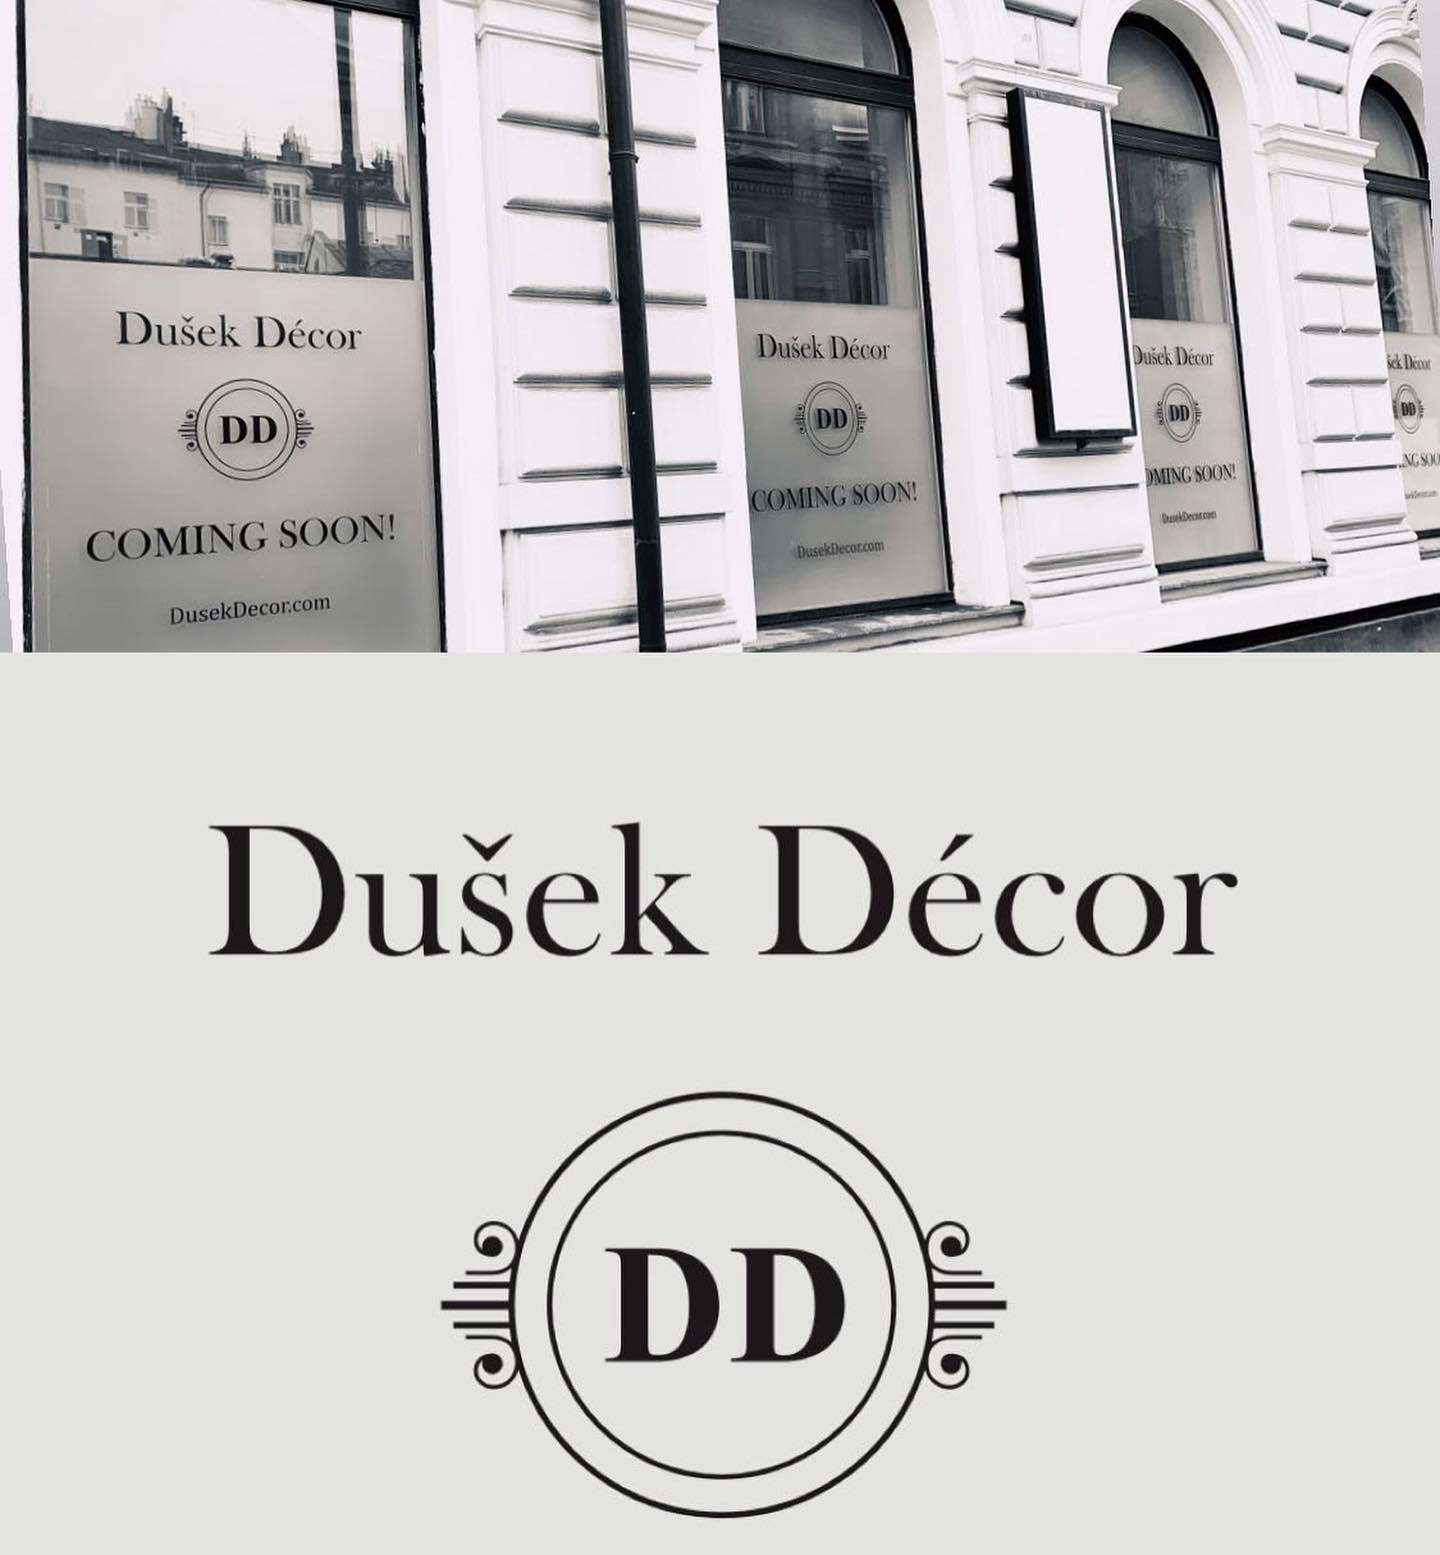 Now You Already Can Find PullCast Hardware In the Czech Republic With Dušek Décor pullcast Now You Already Can Find PullCast Hardware In the Czech Republic With Dušek Décor Now You Already Can Find PullCast Hardware In the Czech Republic With Dusek Decor lg